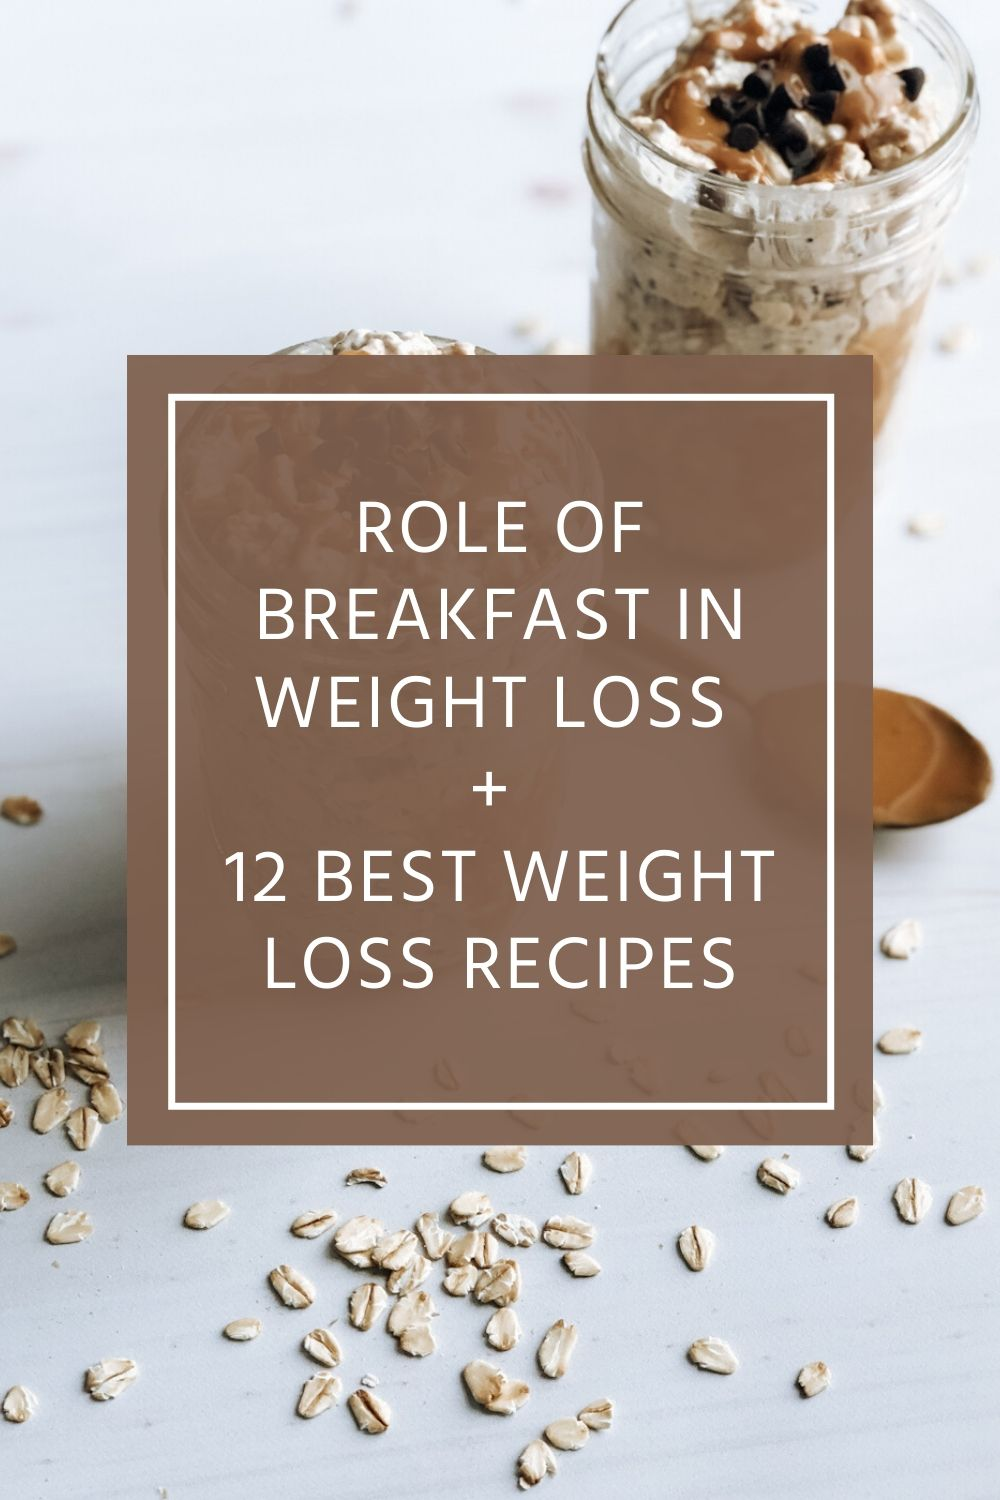 Best Healthy Breakfast Ideas for Weight Loss